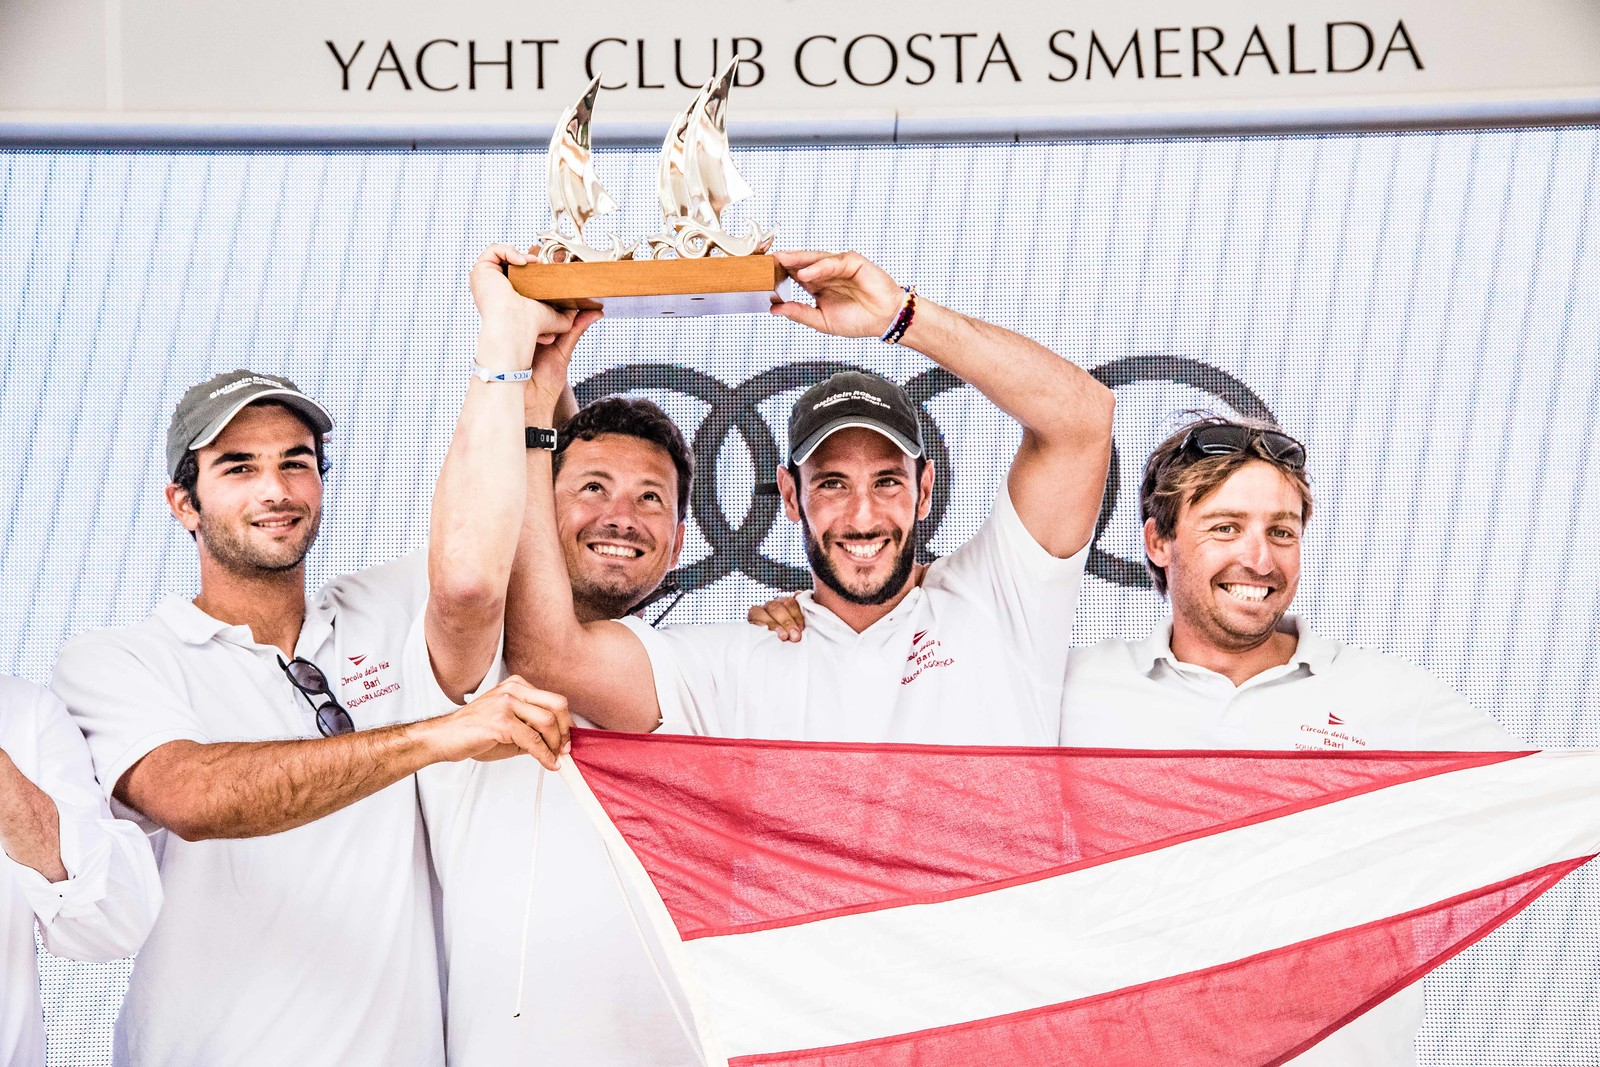 Audi SAILING Champions League: Victory for Circolo della Vela Bari - NEWS - Yacht Club Costa Smeralda